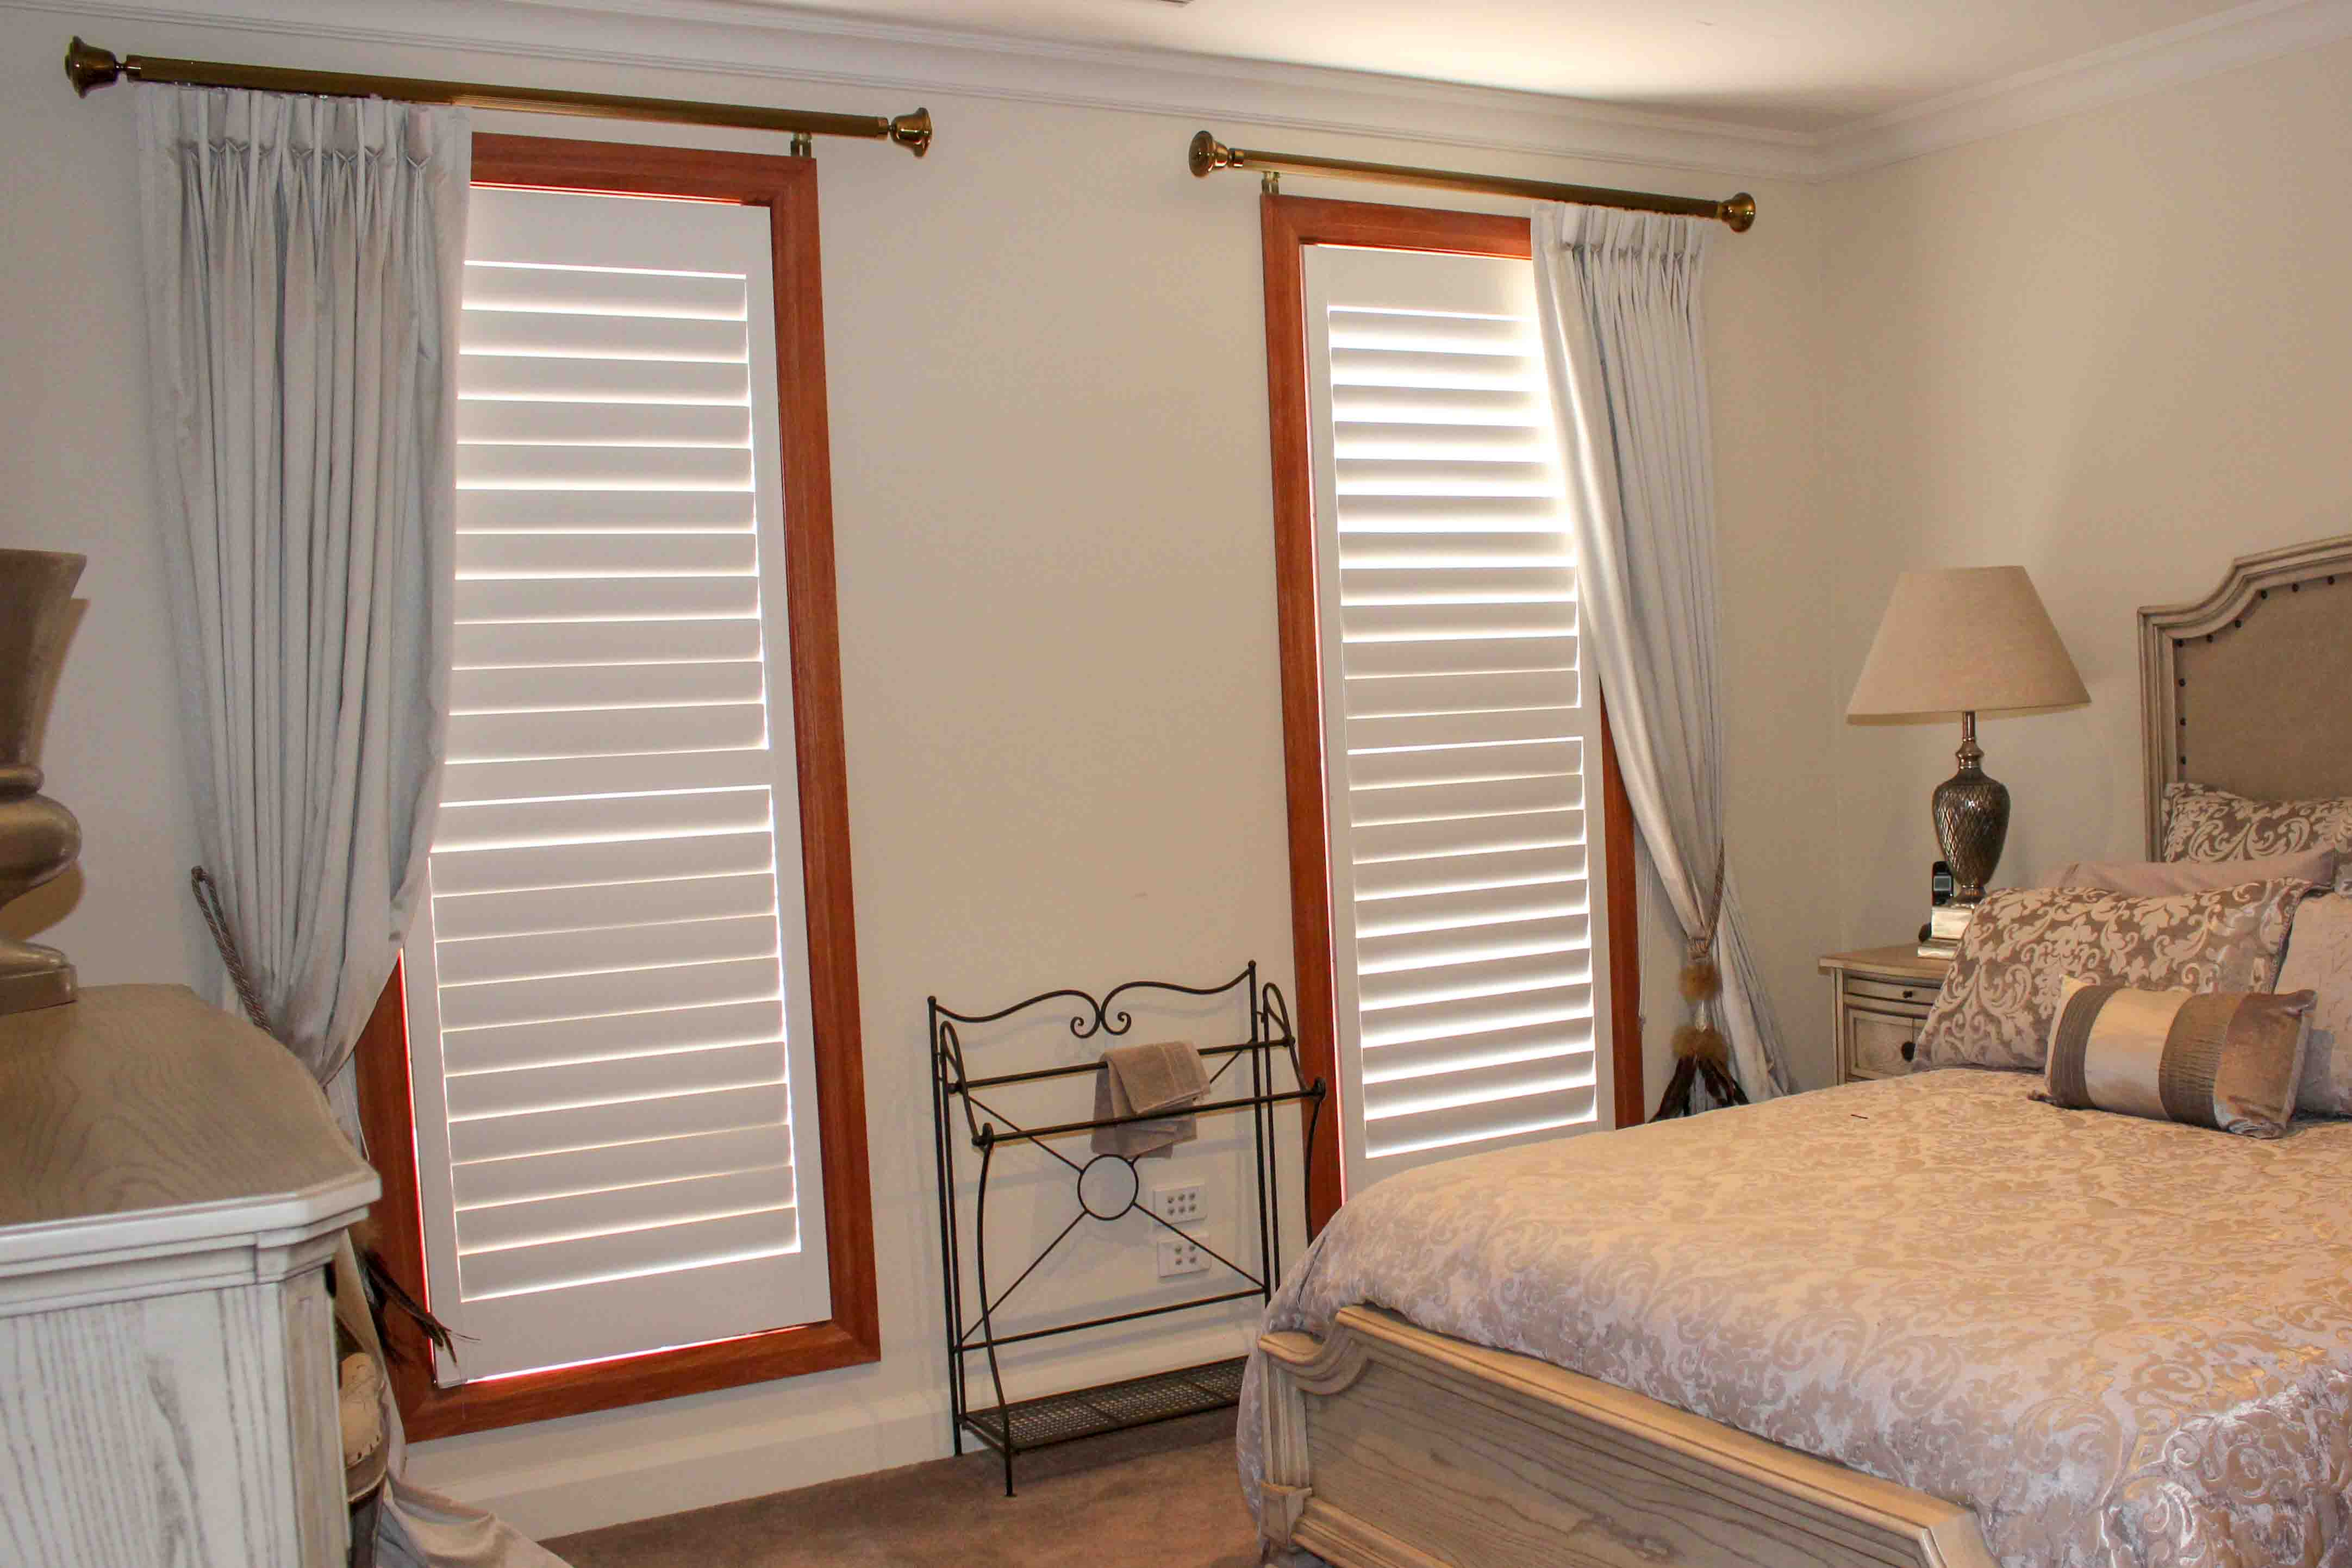 Goblet pleated lined curtains draped on floor. On decorative antique brass poles